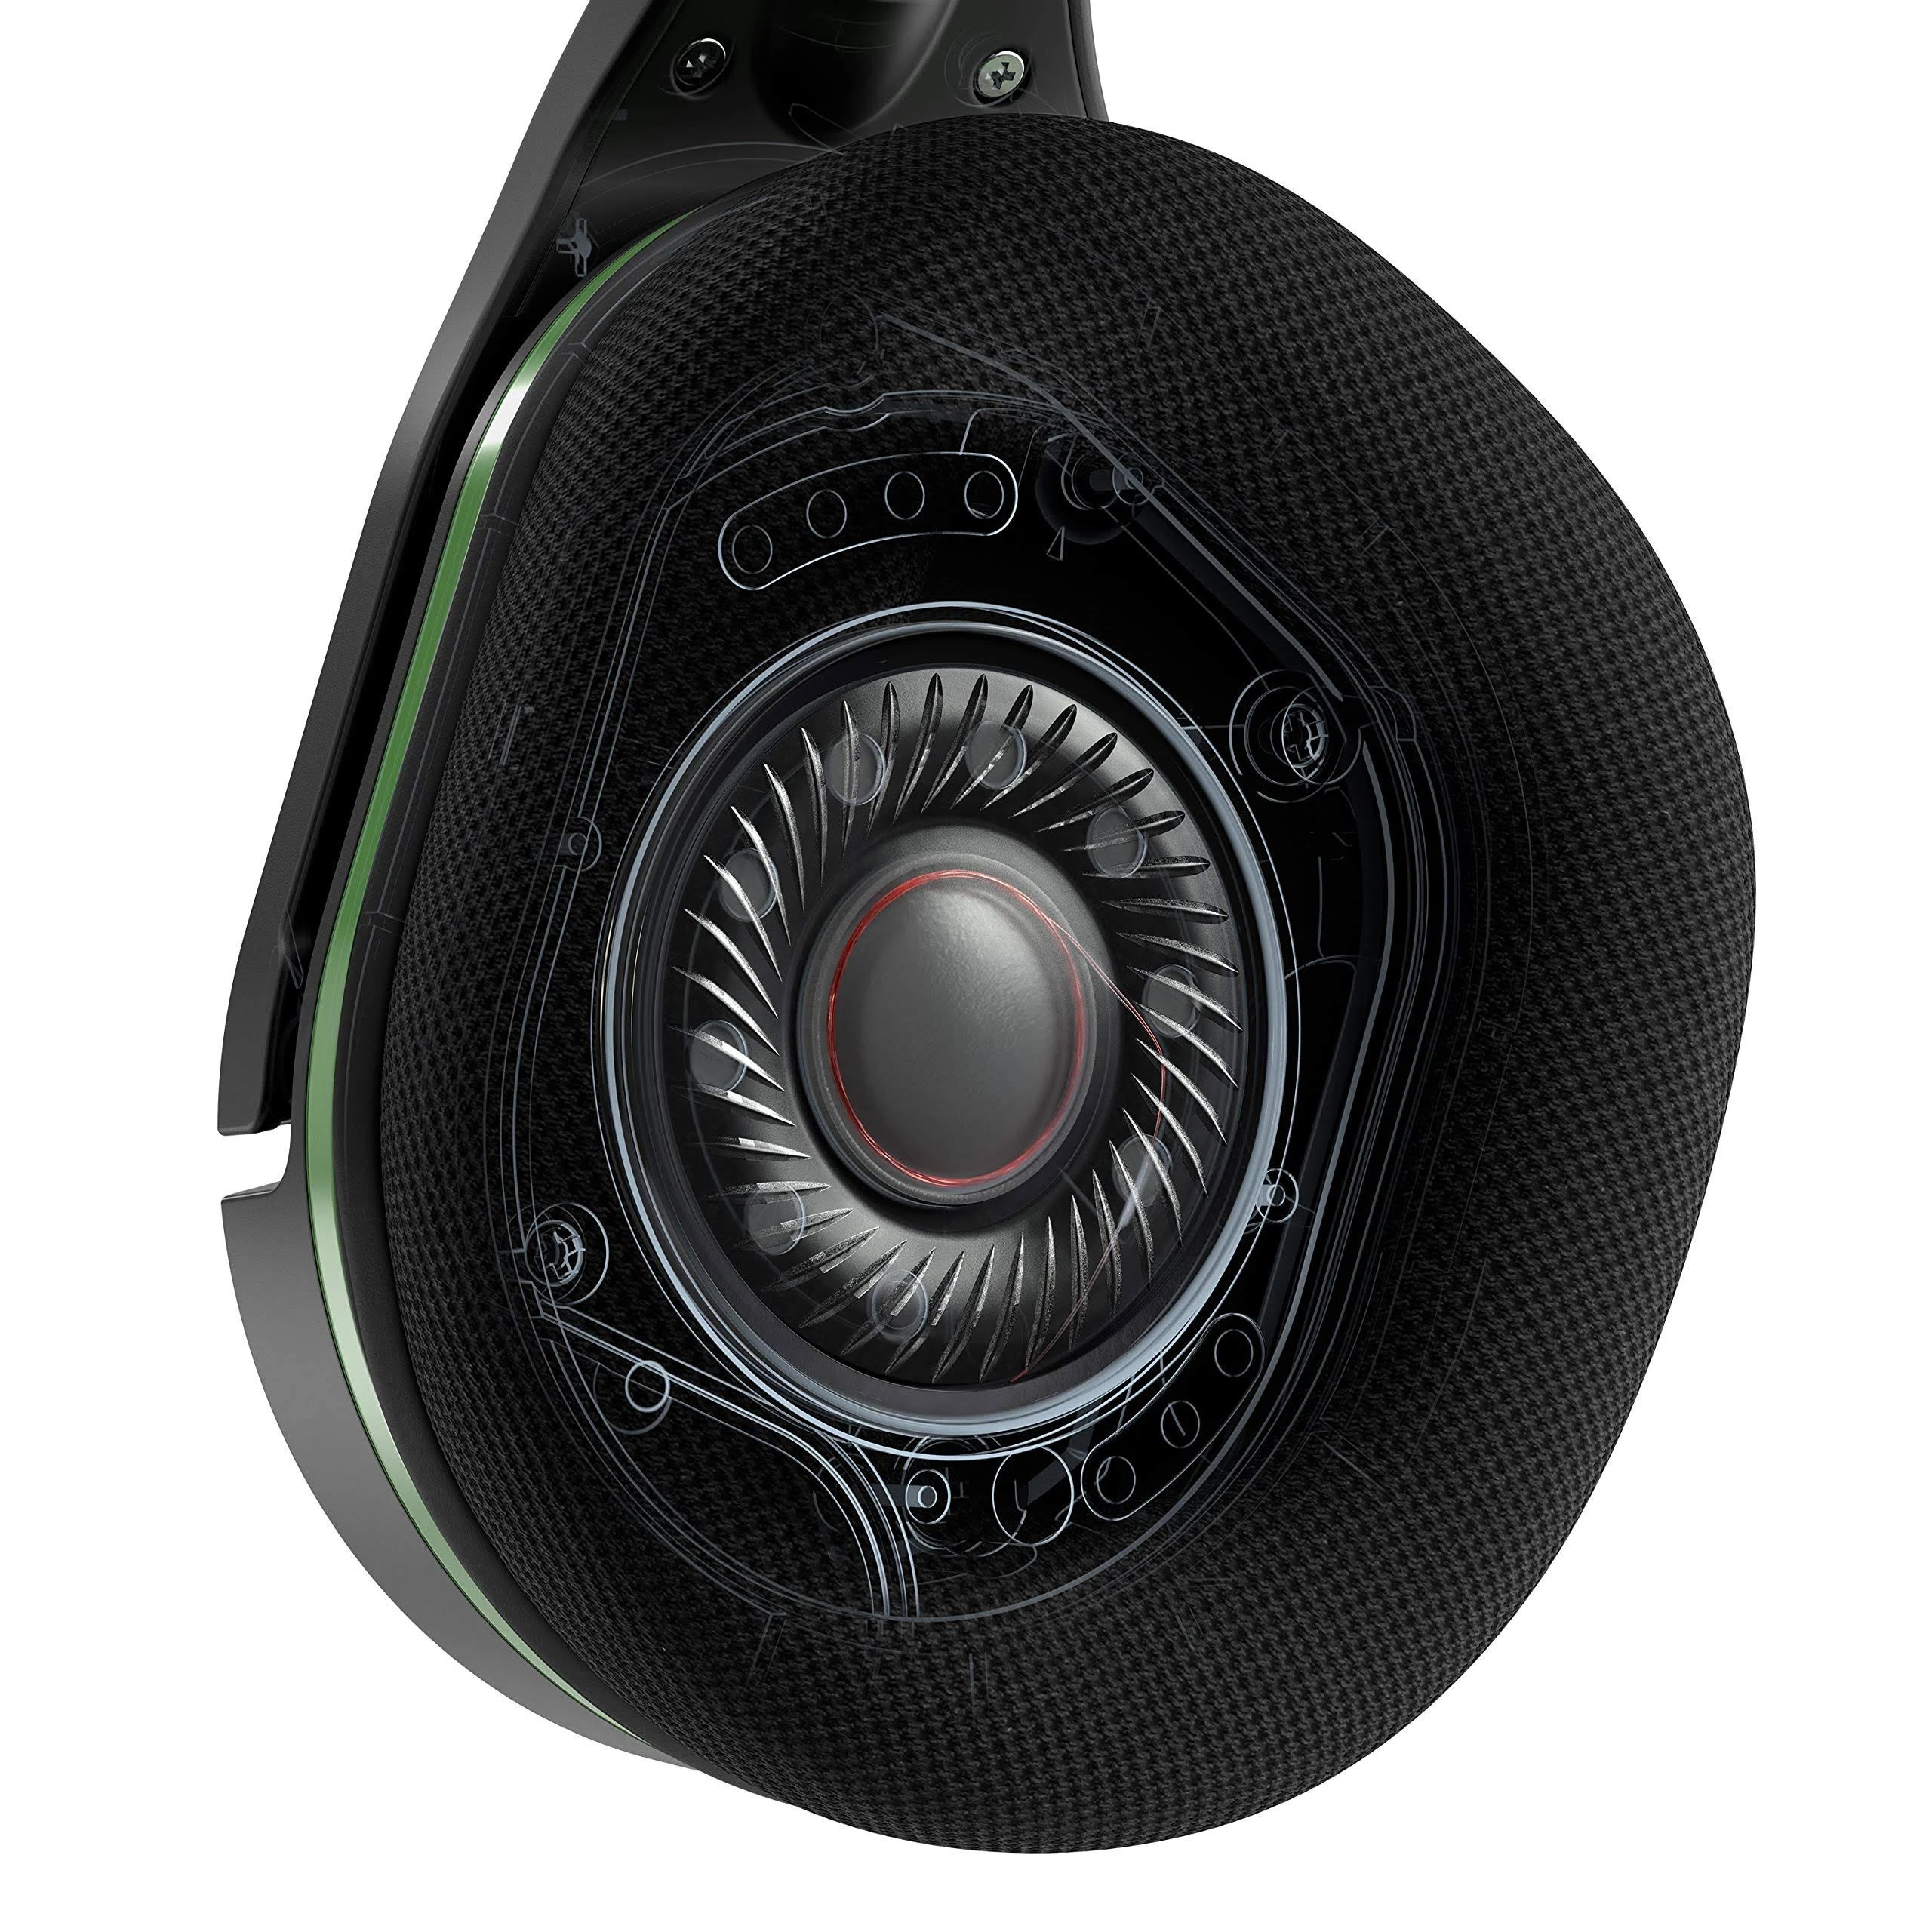 Picture of Turtle Beach Stealth 600 Gen 2 (Black) Wireless Gaming Headset for Xbox One, Xbox Series S|X